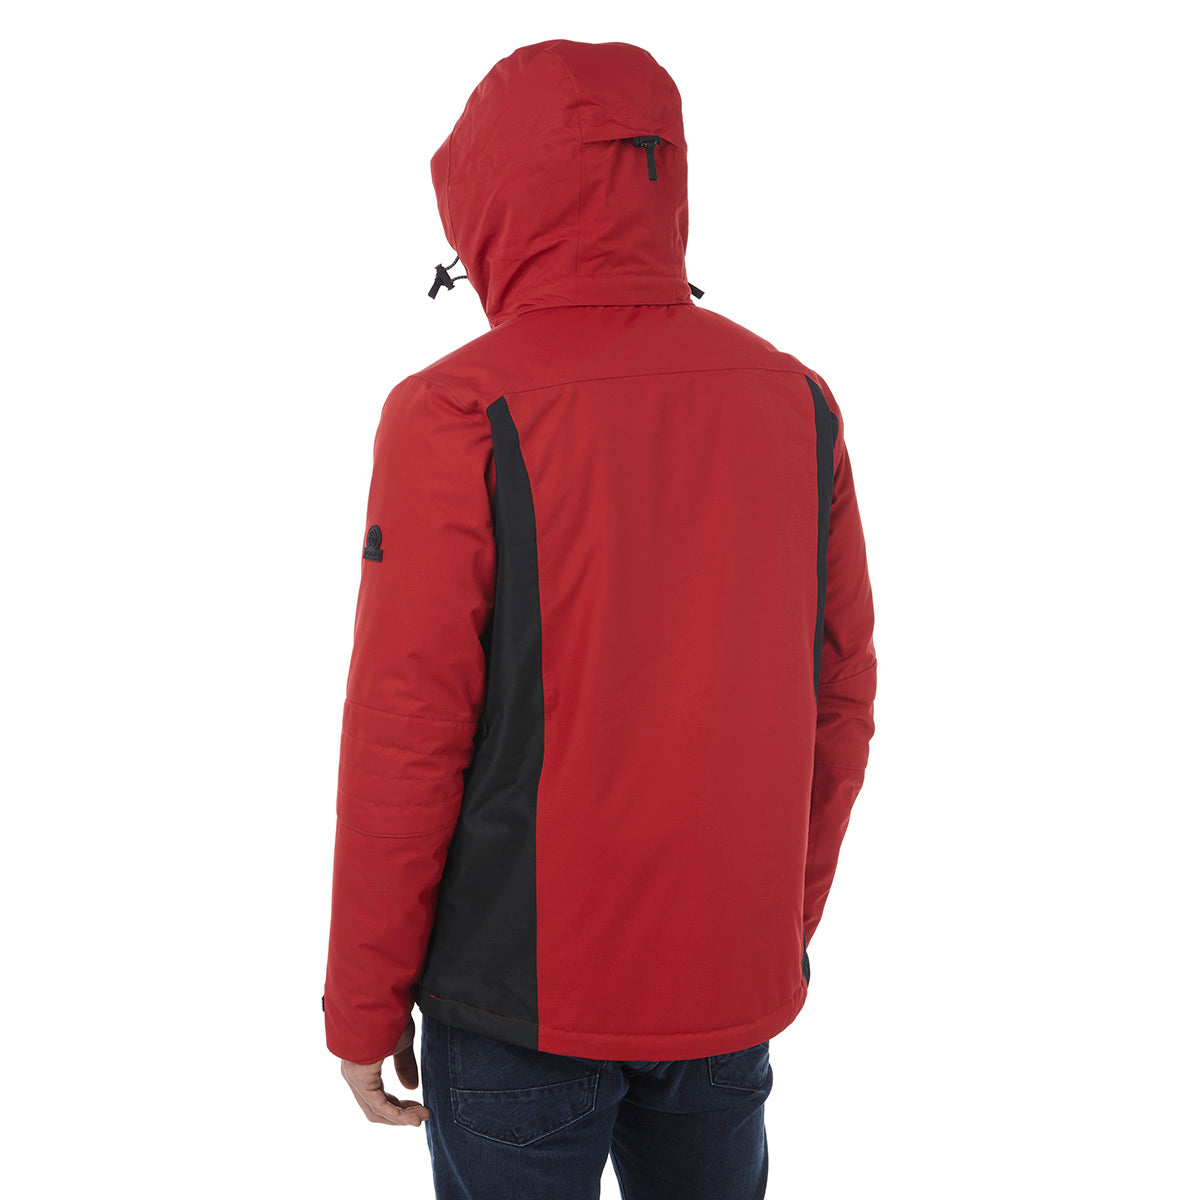 Sharp Mens Waterproof Insulated Ski Jacket - Chilli Red/Black image 4